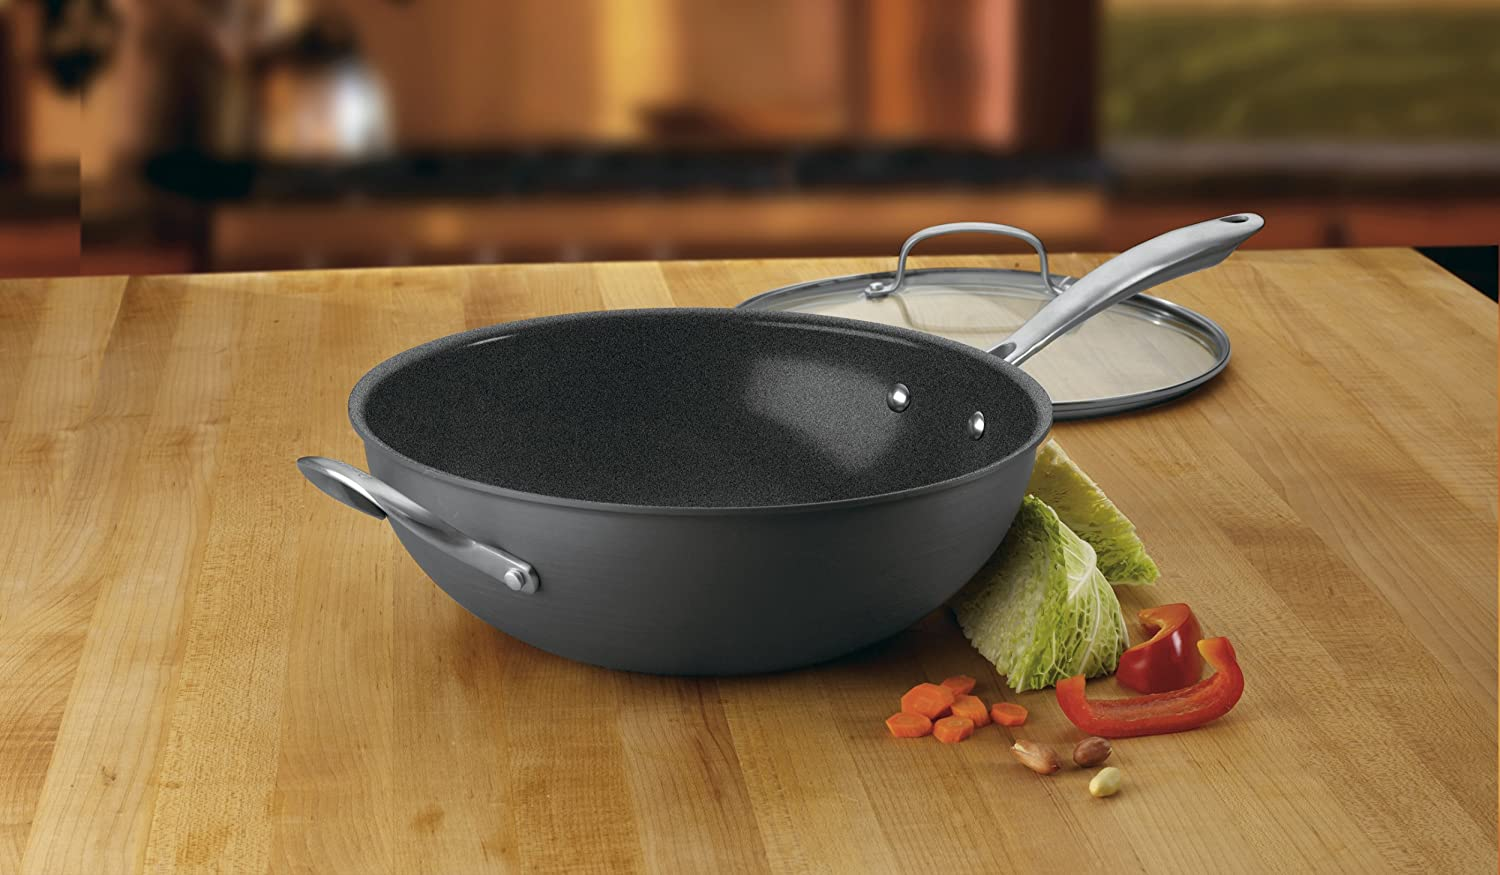 Best Stir Fry Wok Pans Reviews